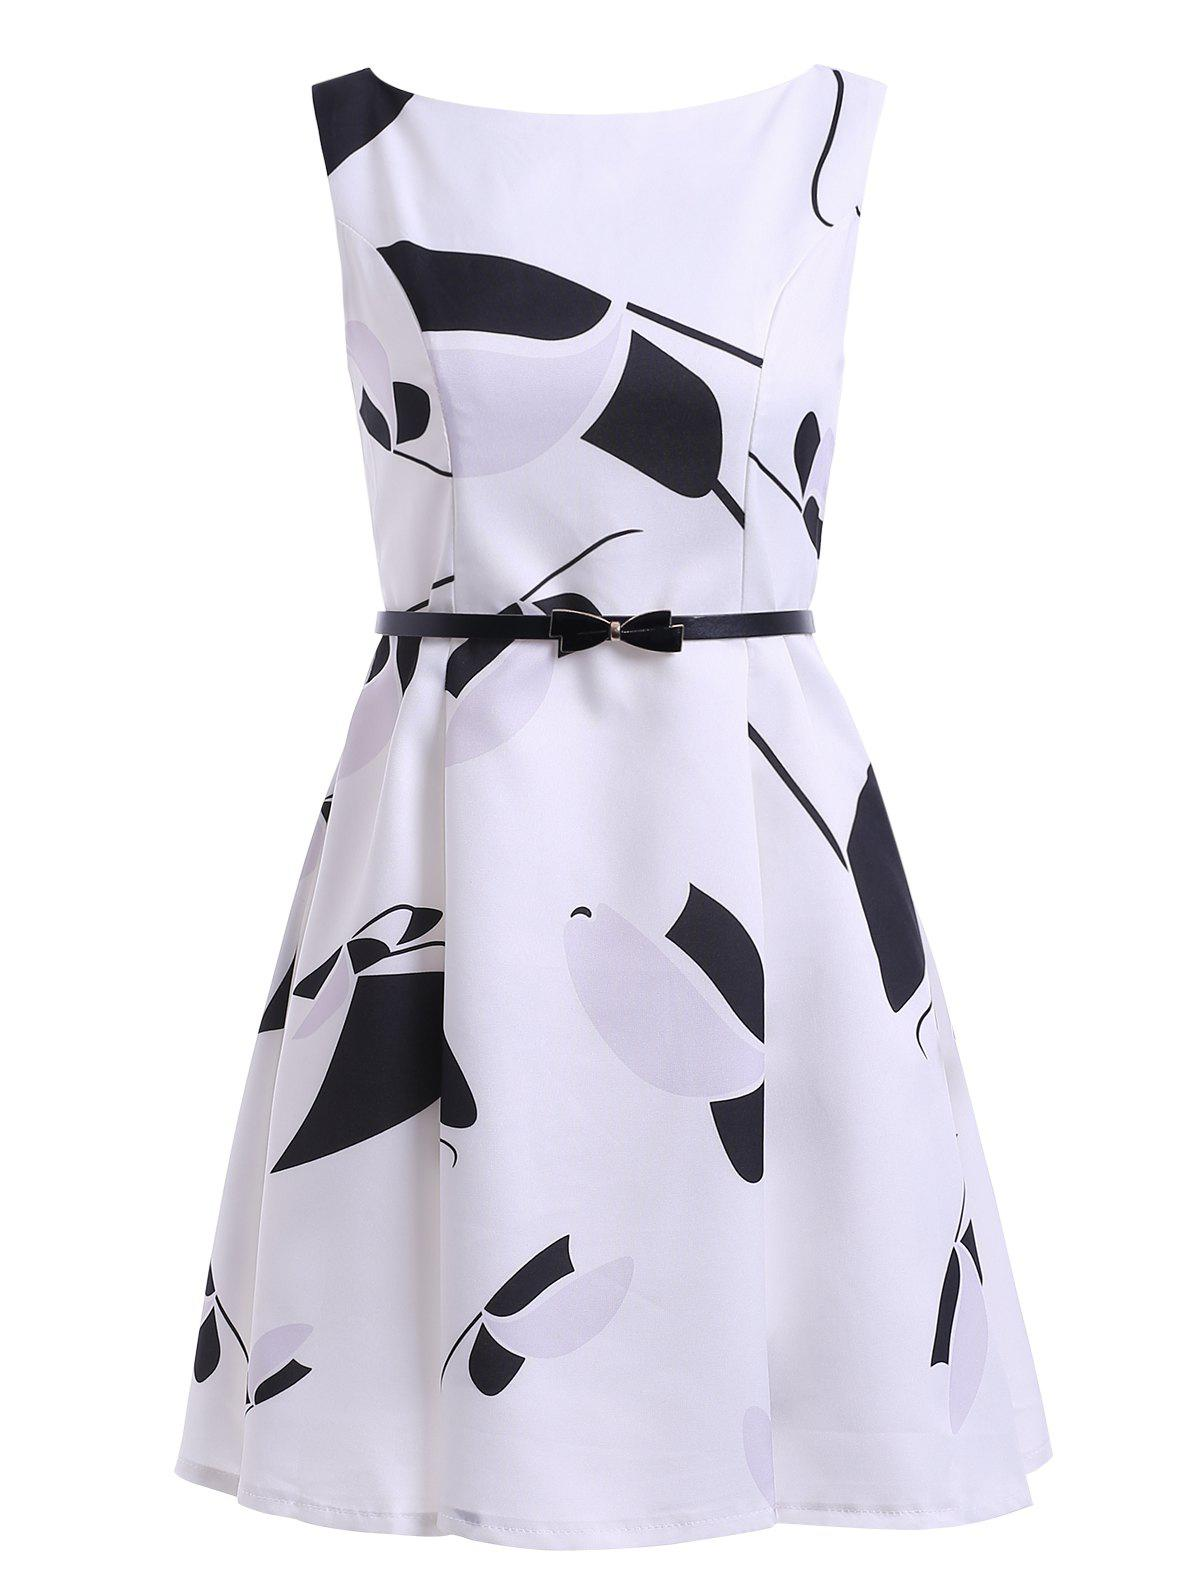 Stylish Print Sleeveless Belted Round Neck Dress For Women